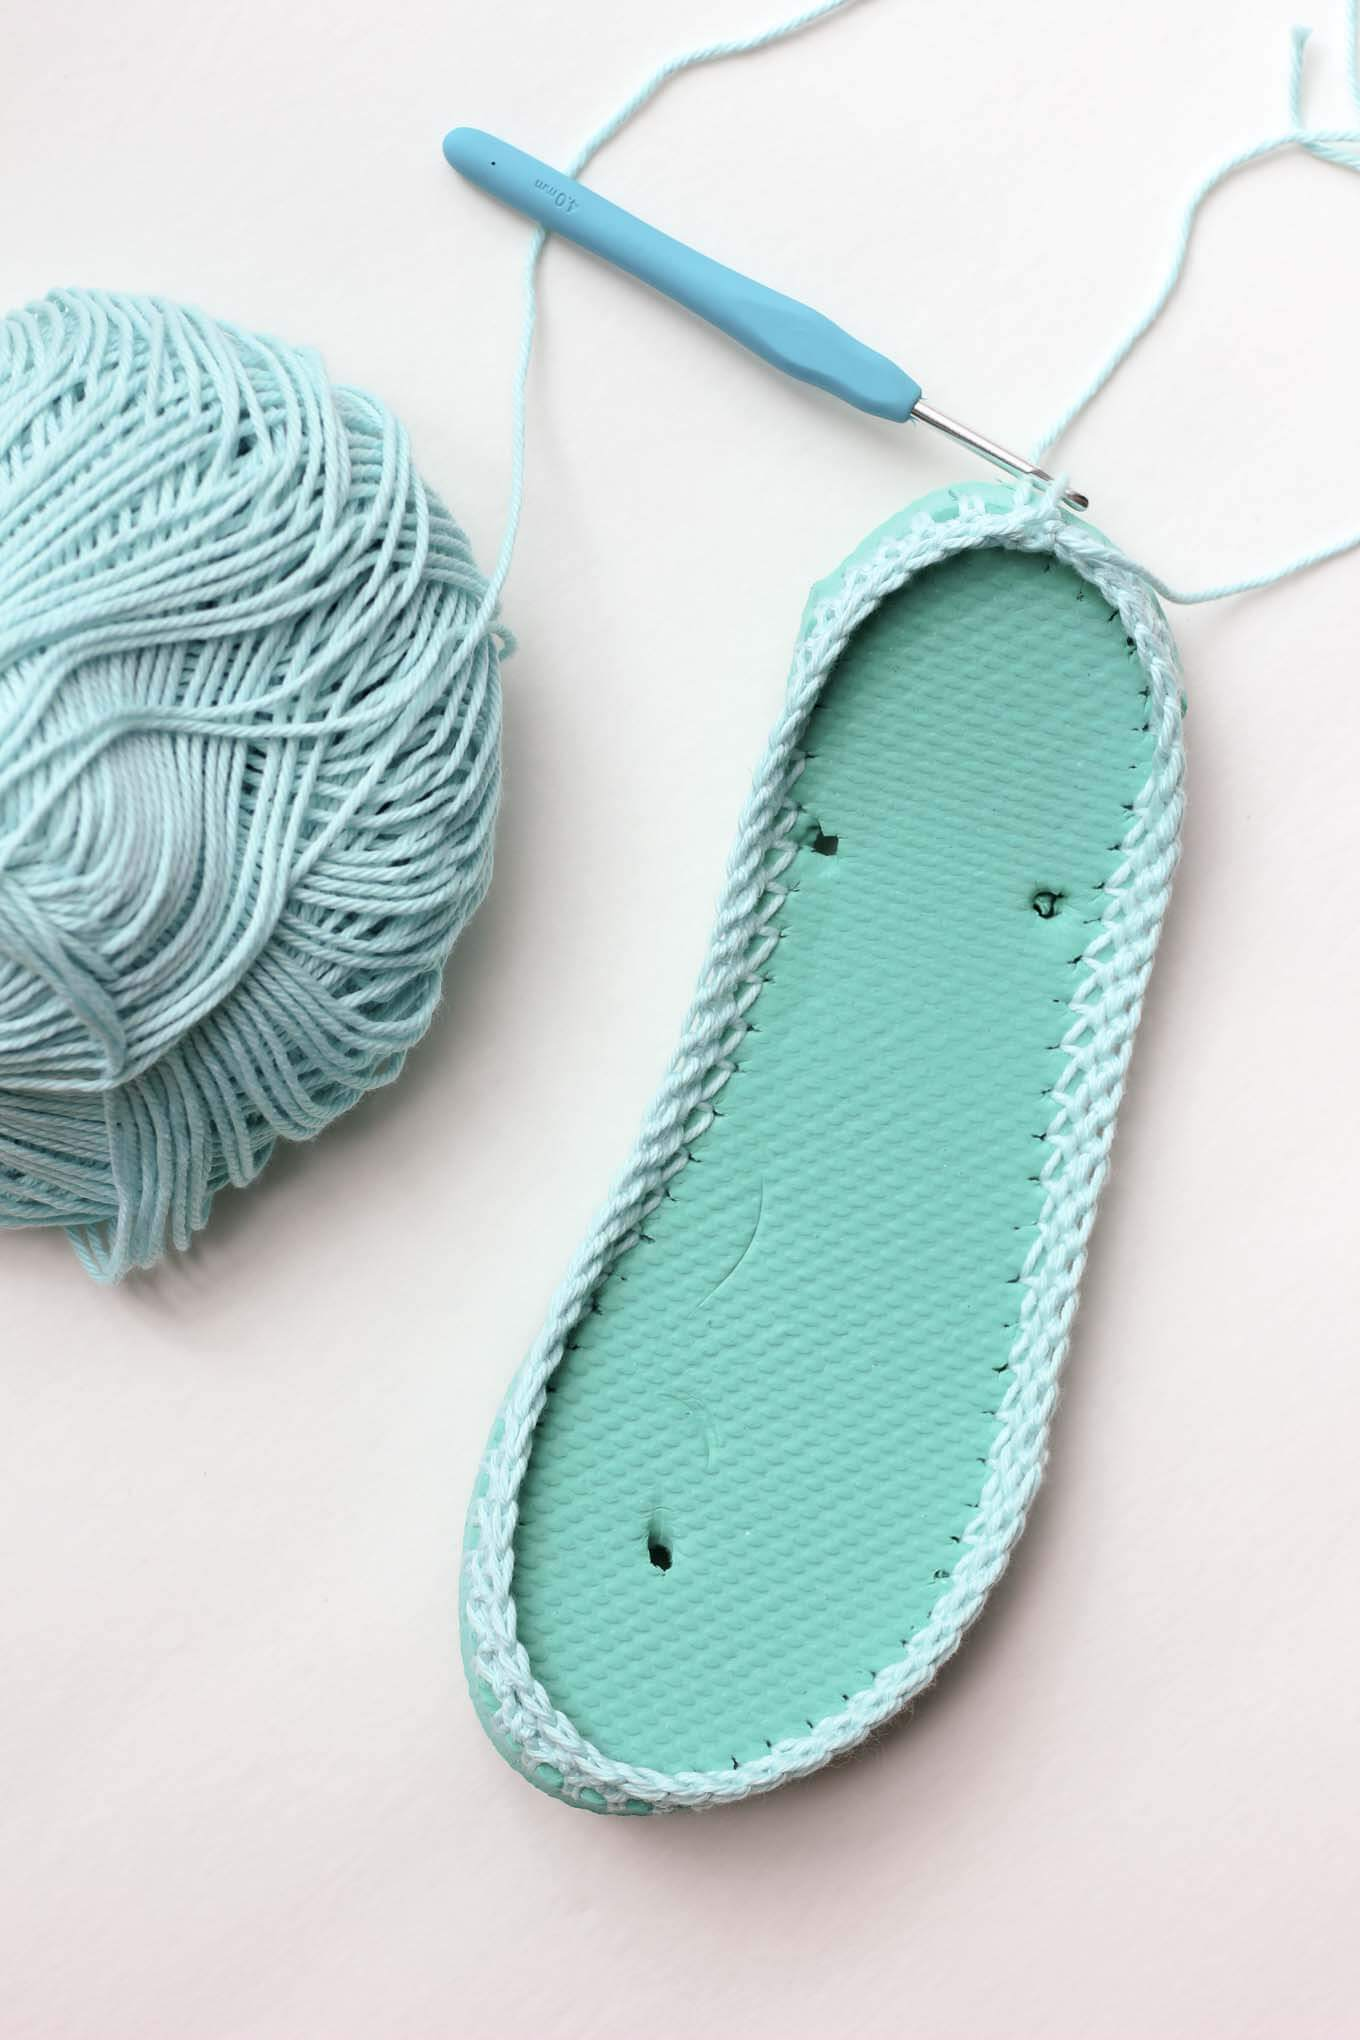 Cotton yarn and flip flops combine to make super comfy crochet slippers with soles in this free crochet pattern! These are perfect for warmer weather too!